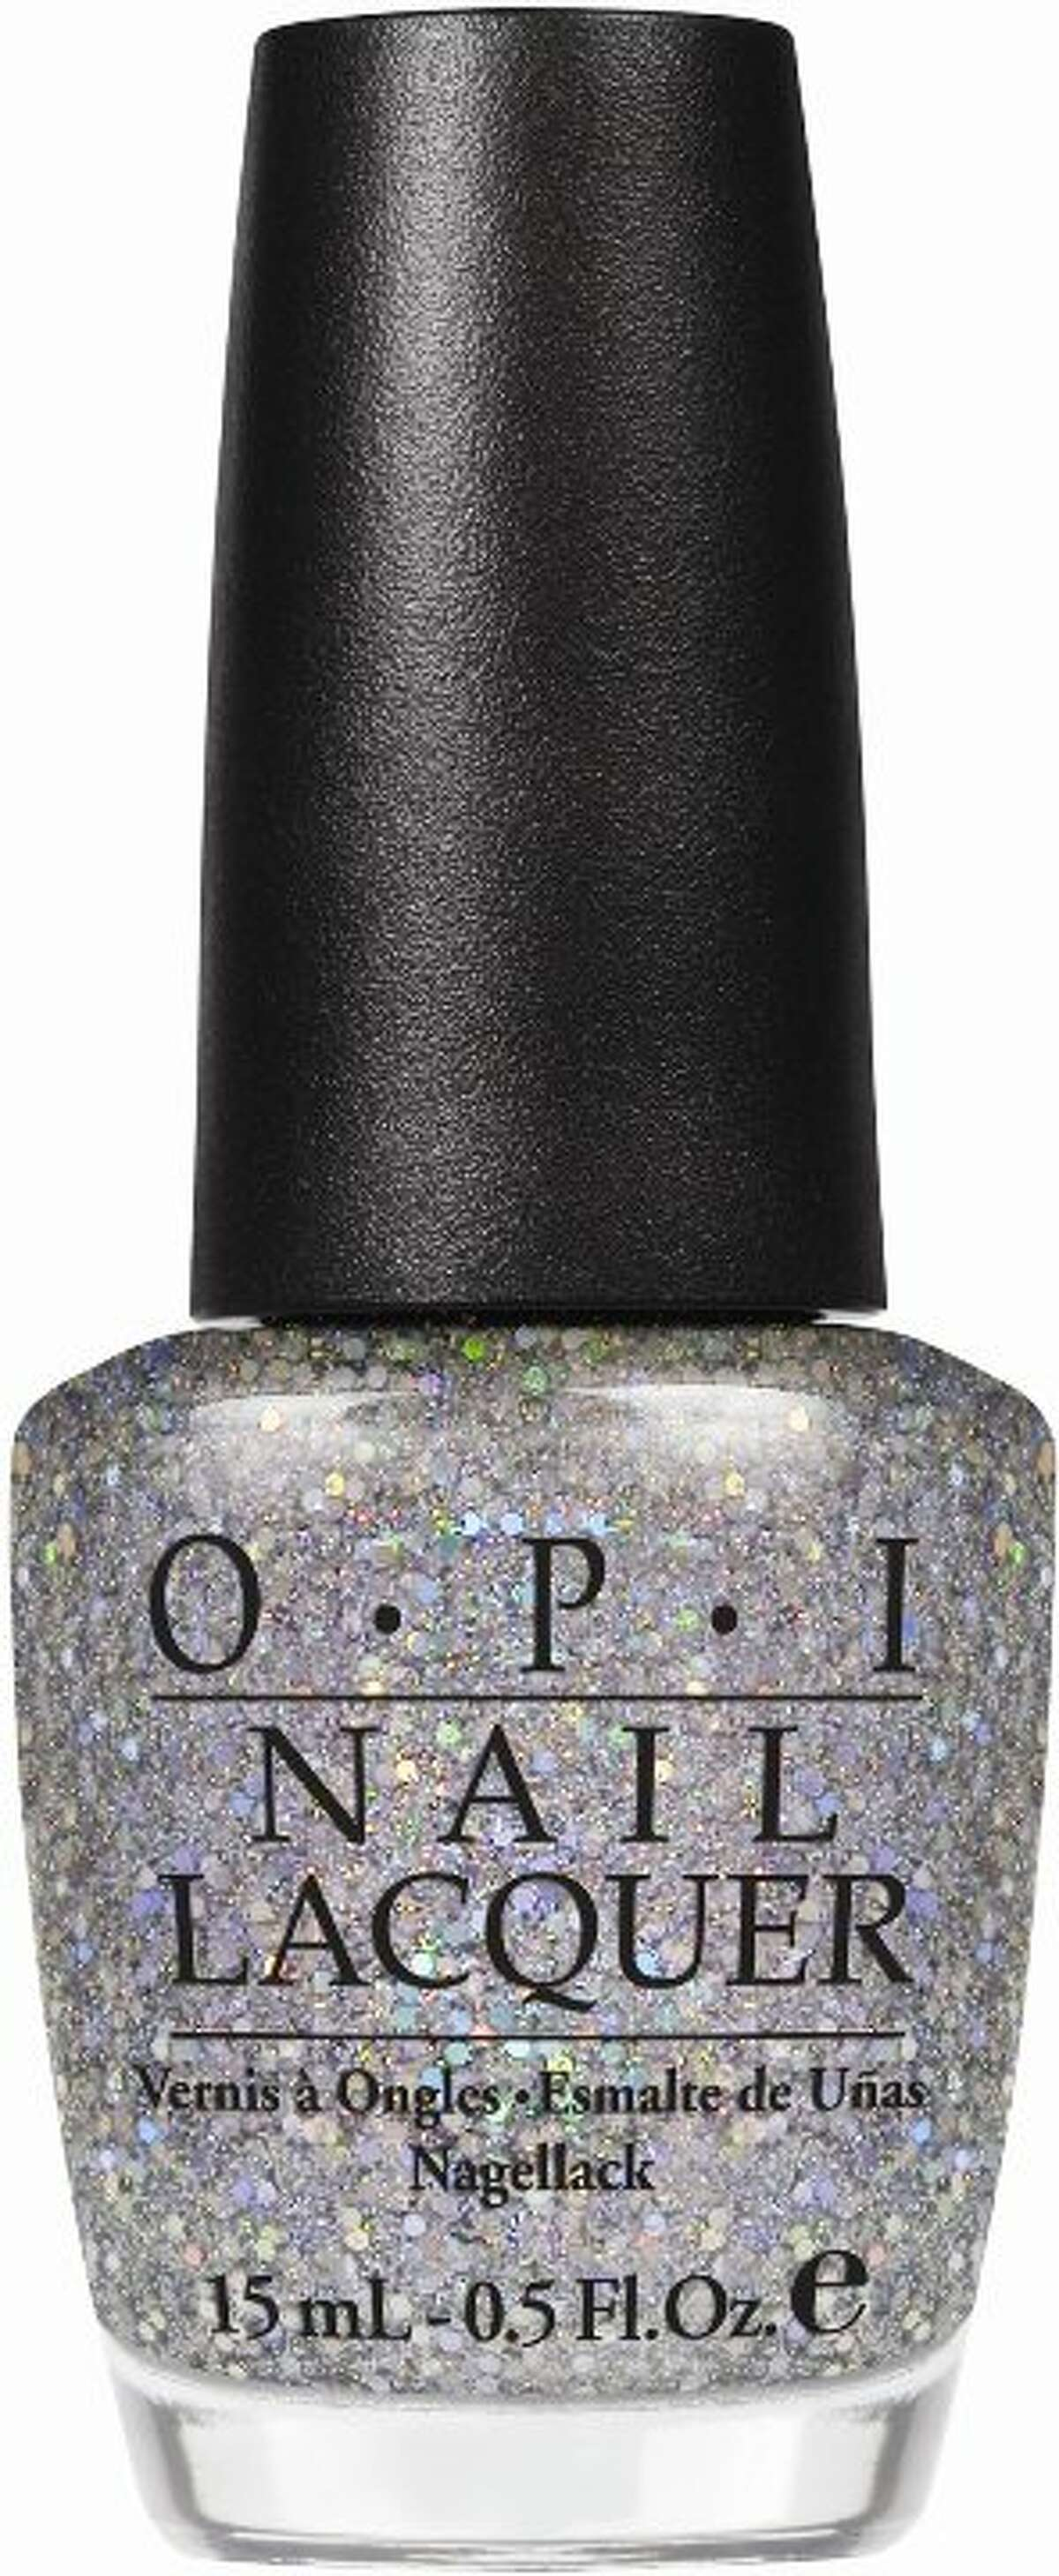 Servin' Up Sparkle is one of the new shades in Serena Williams' Grand Slam series of nail polishes for O.P.I.